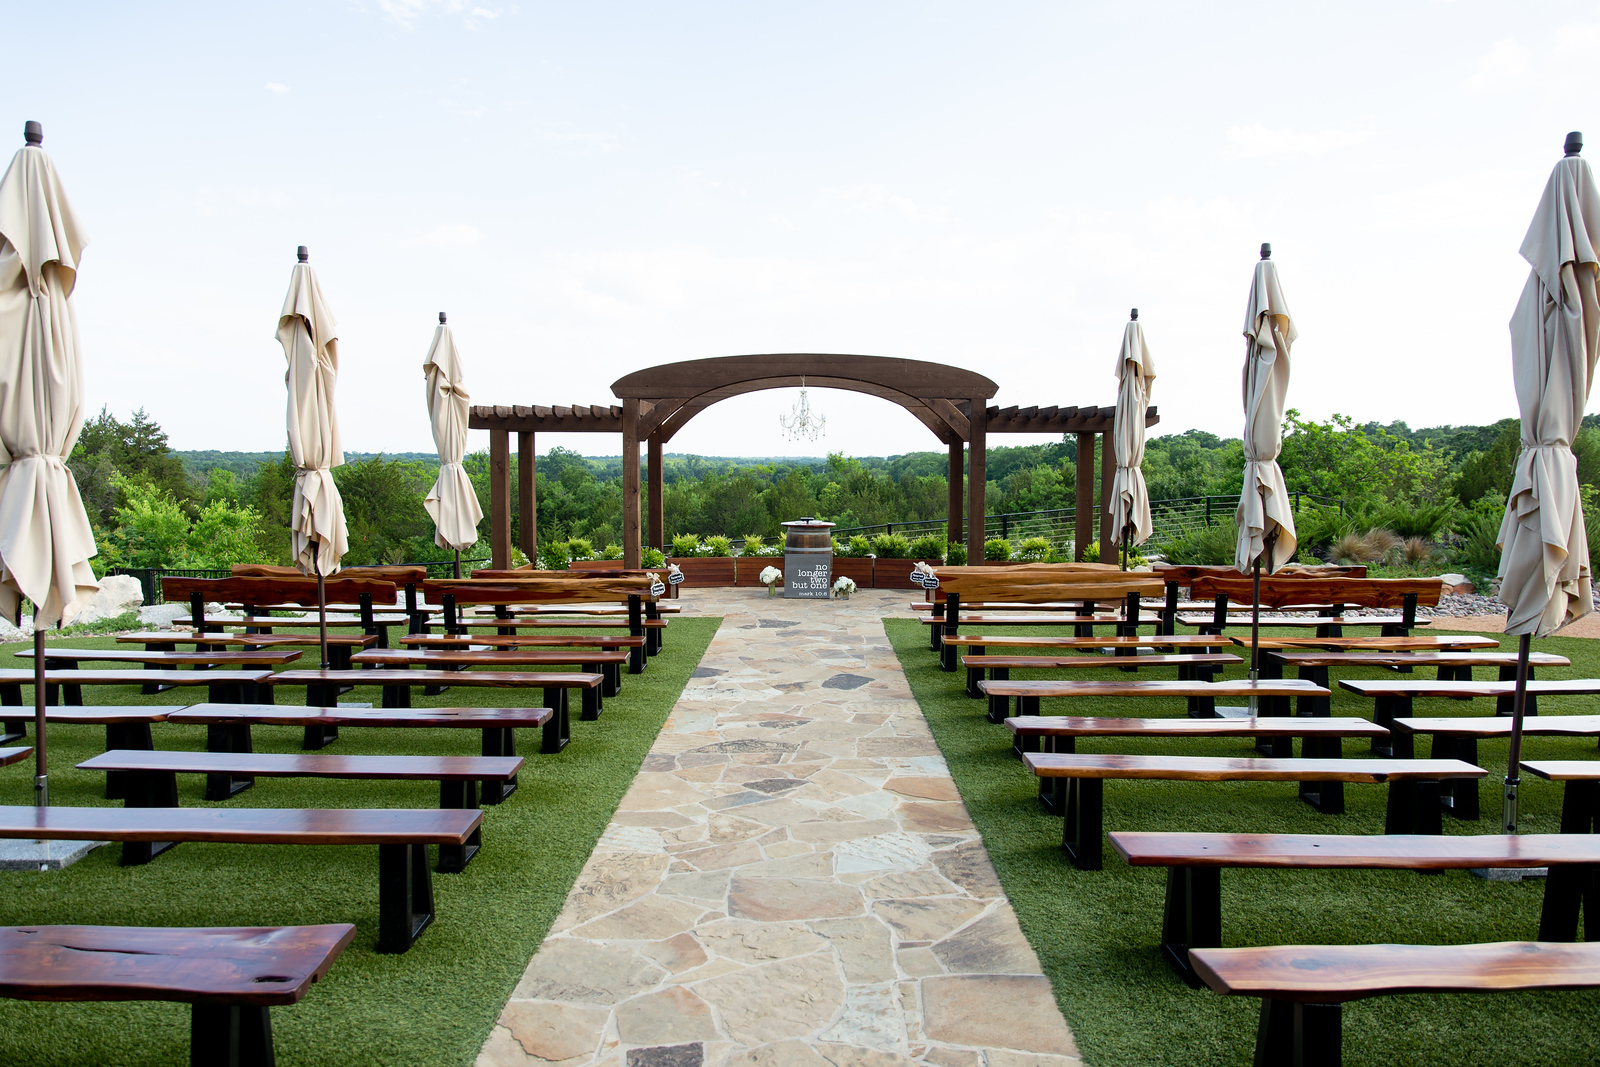 ceremony area at Stone Crest Event venue overlooking woodland area